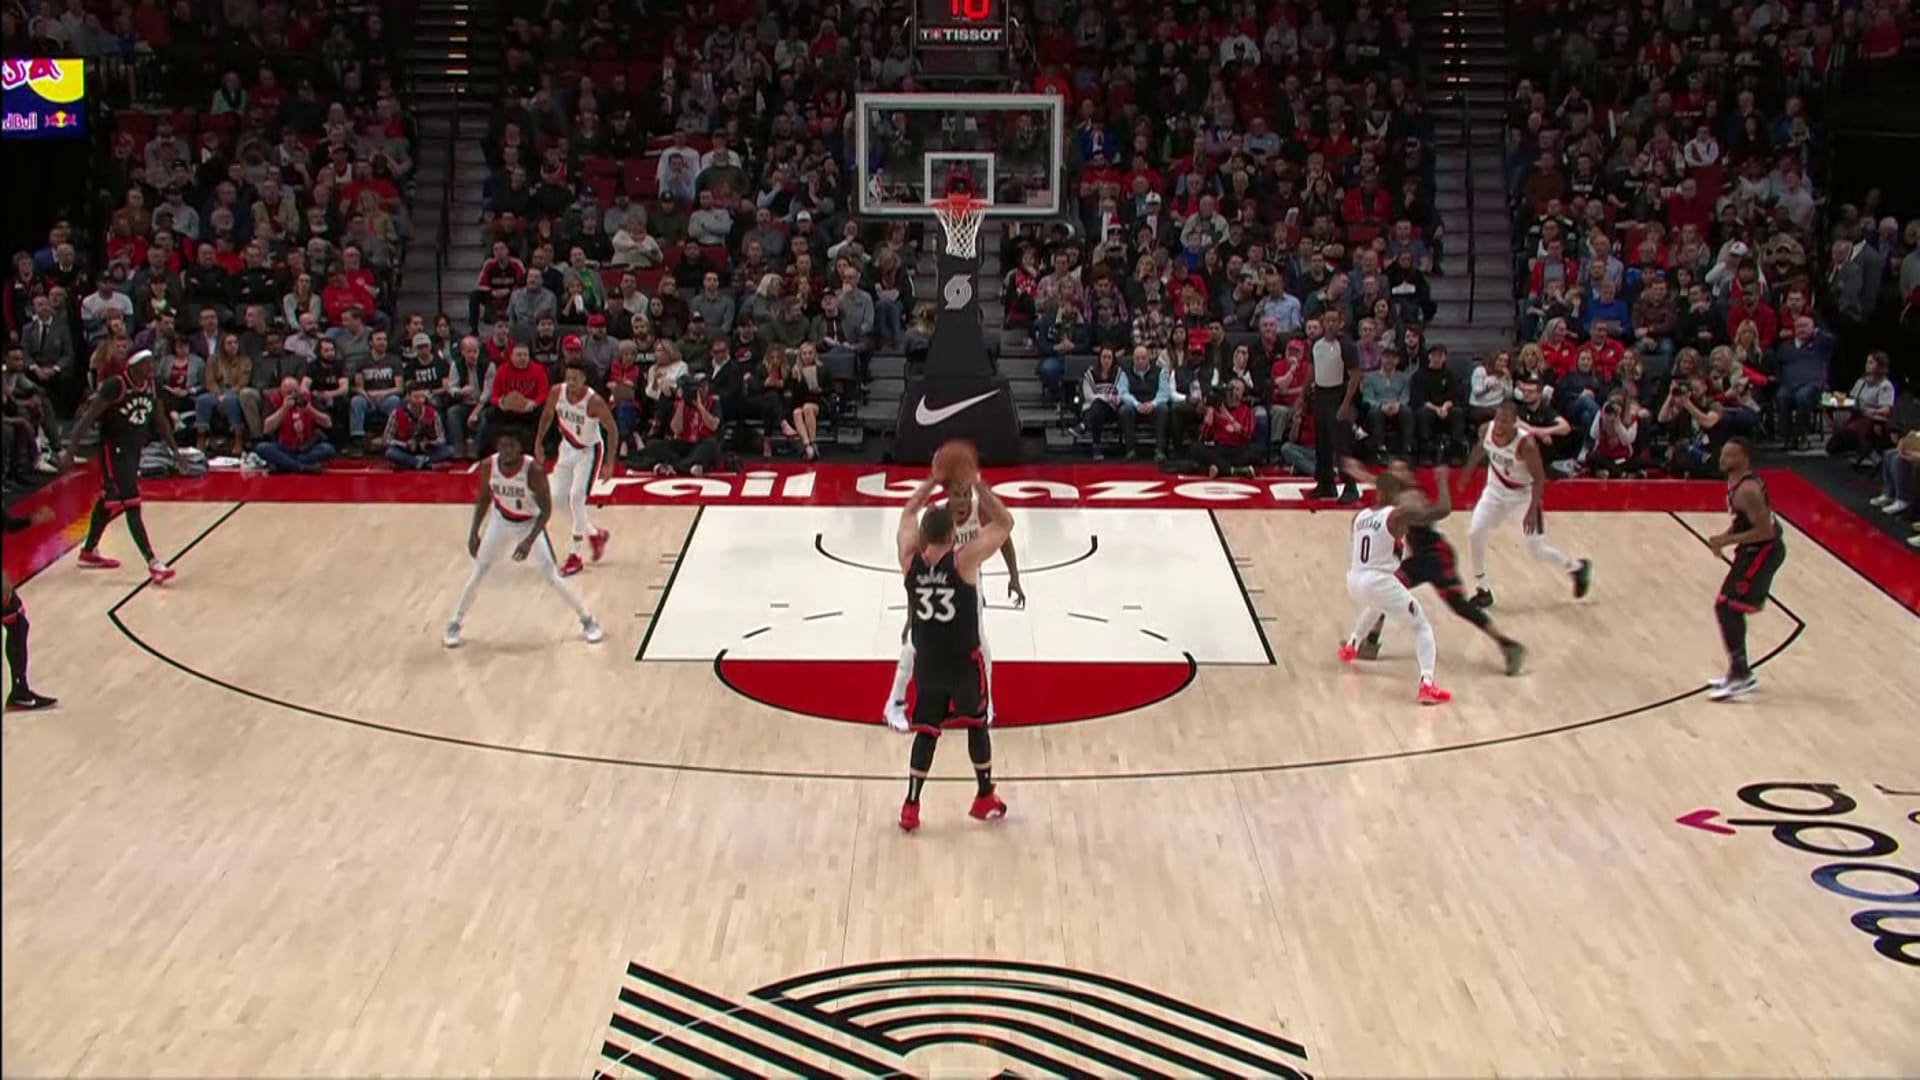 Raptors Highlights: VanVleet Layup - November 13, 2019